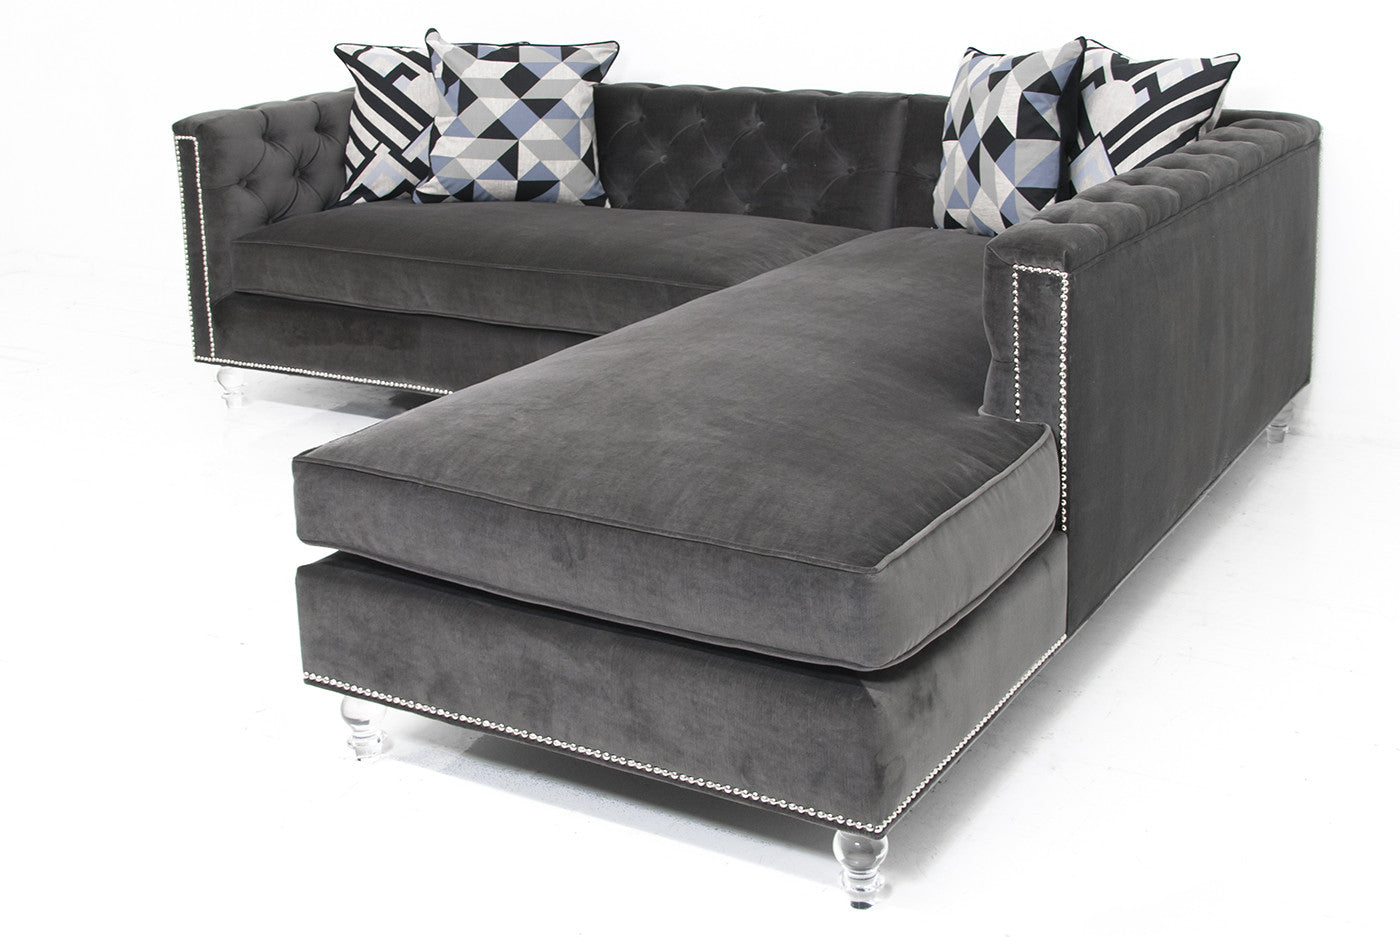 dark gray sectional sofa with collection also fabulous charcoal chaise lounge images design venetian sectional in cannes grey velvet modshop 12312